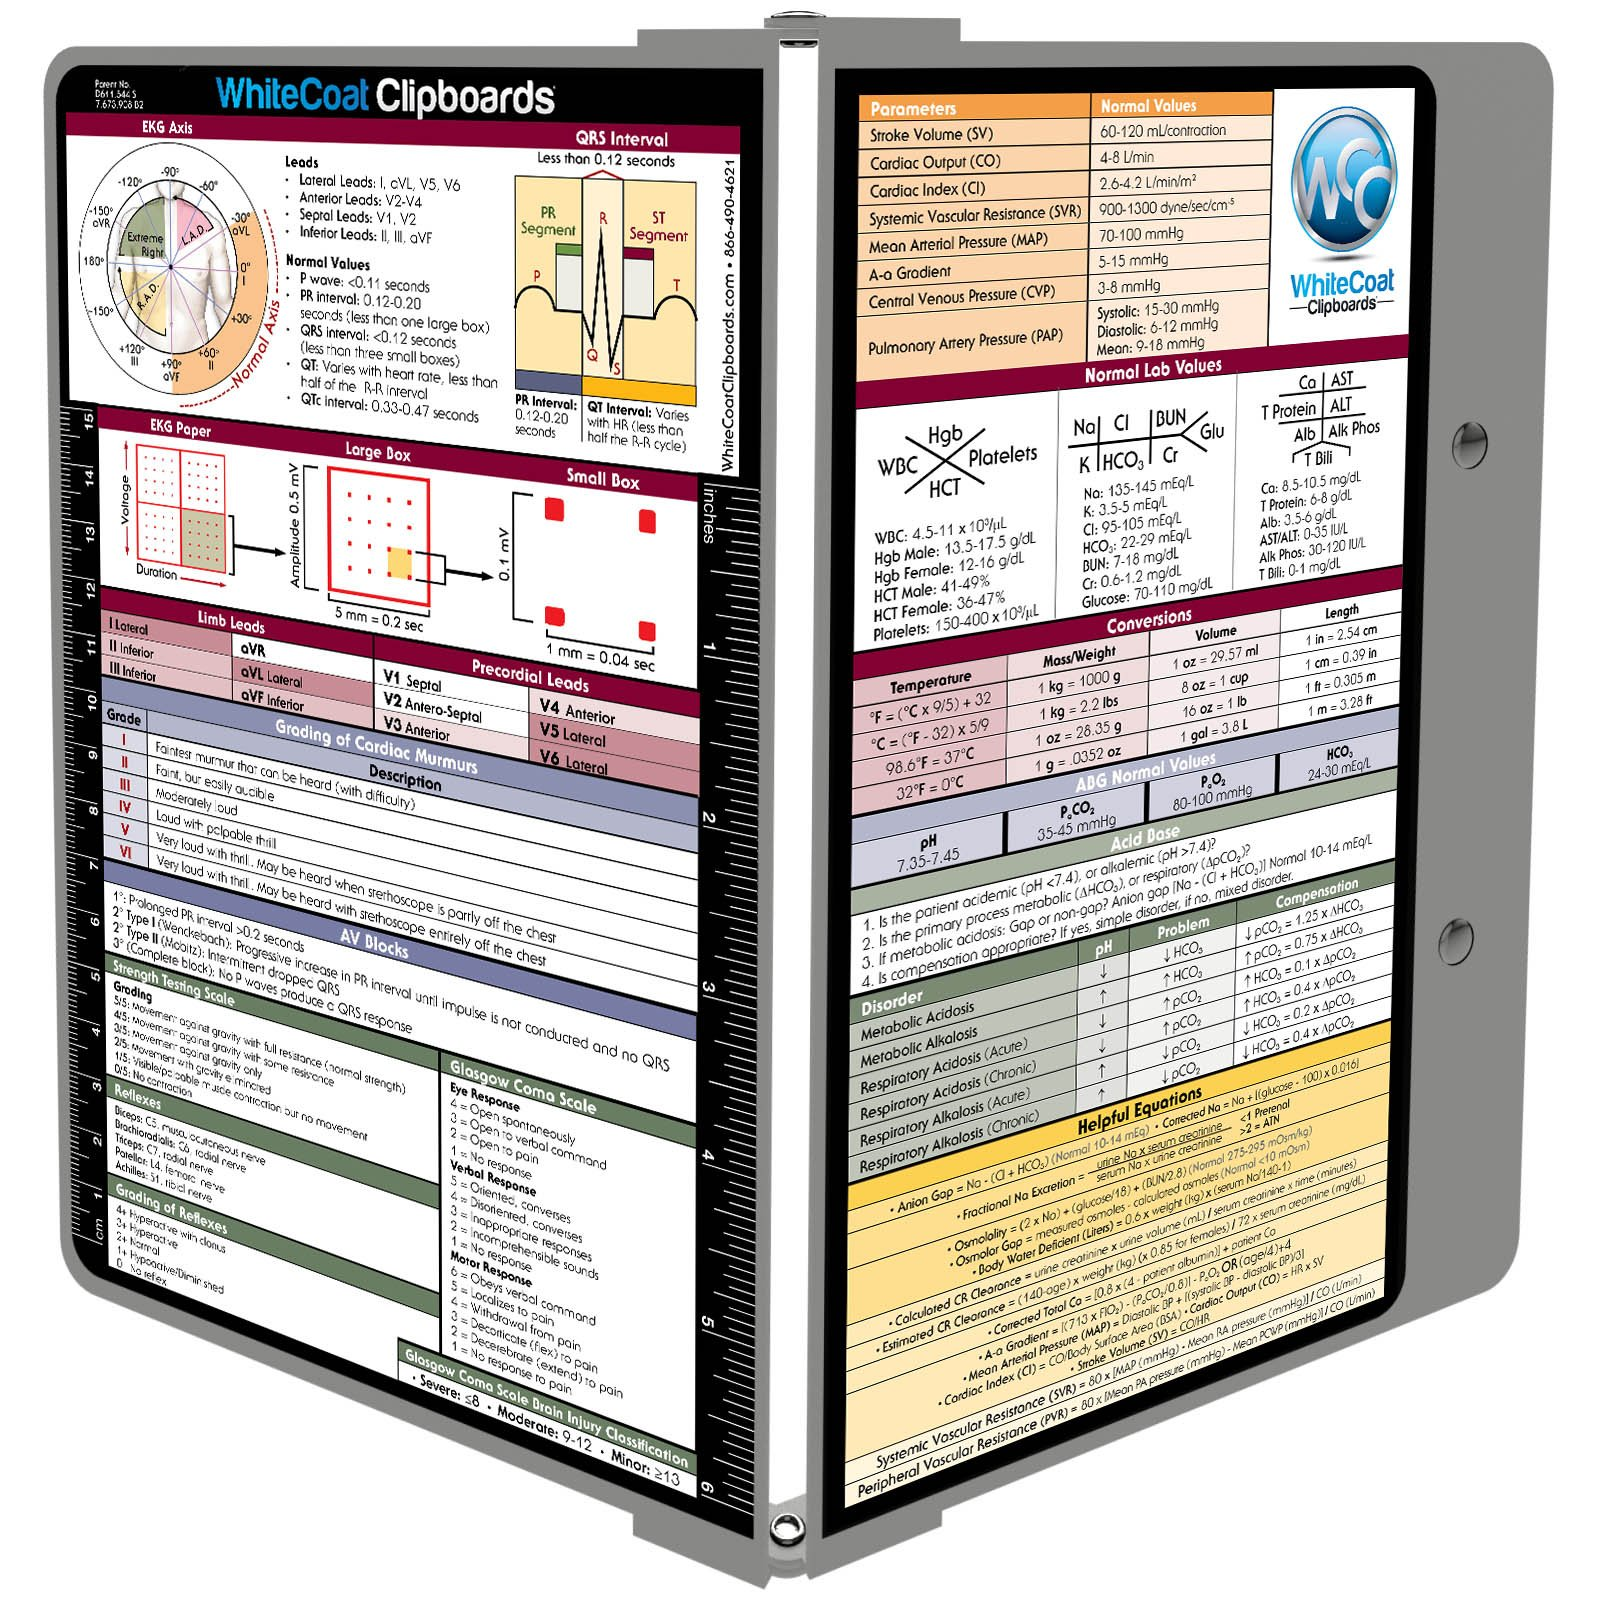 WhiteCoat Clipboard – Sports Silver Medical Edition